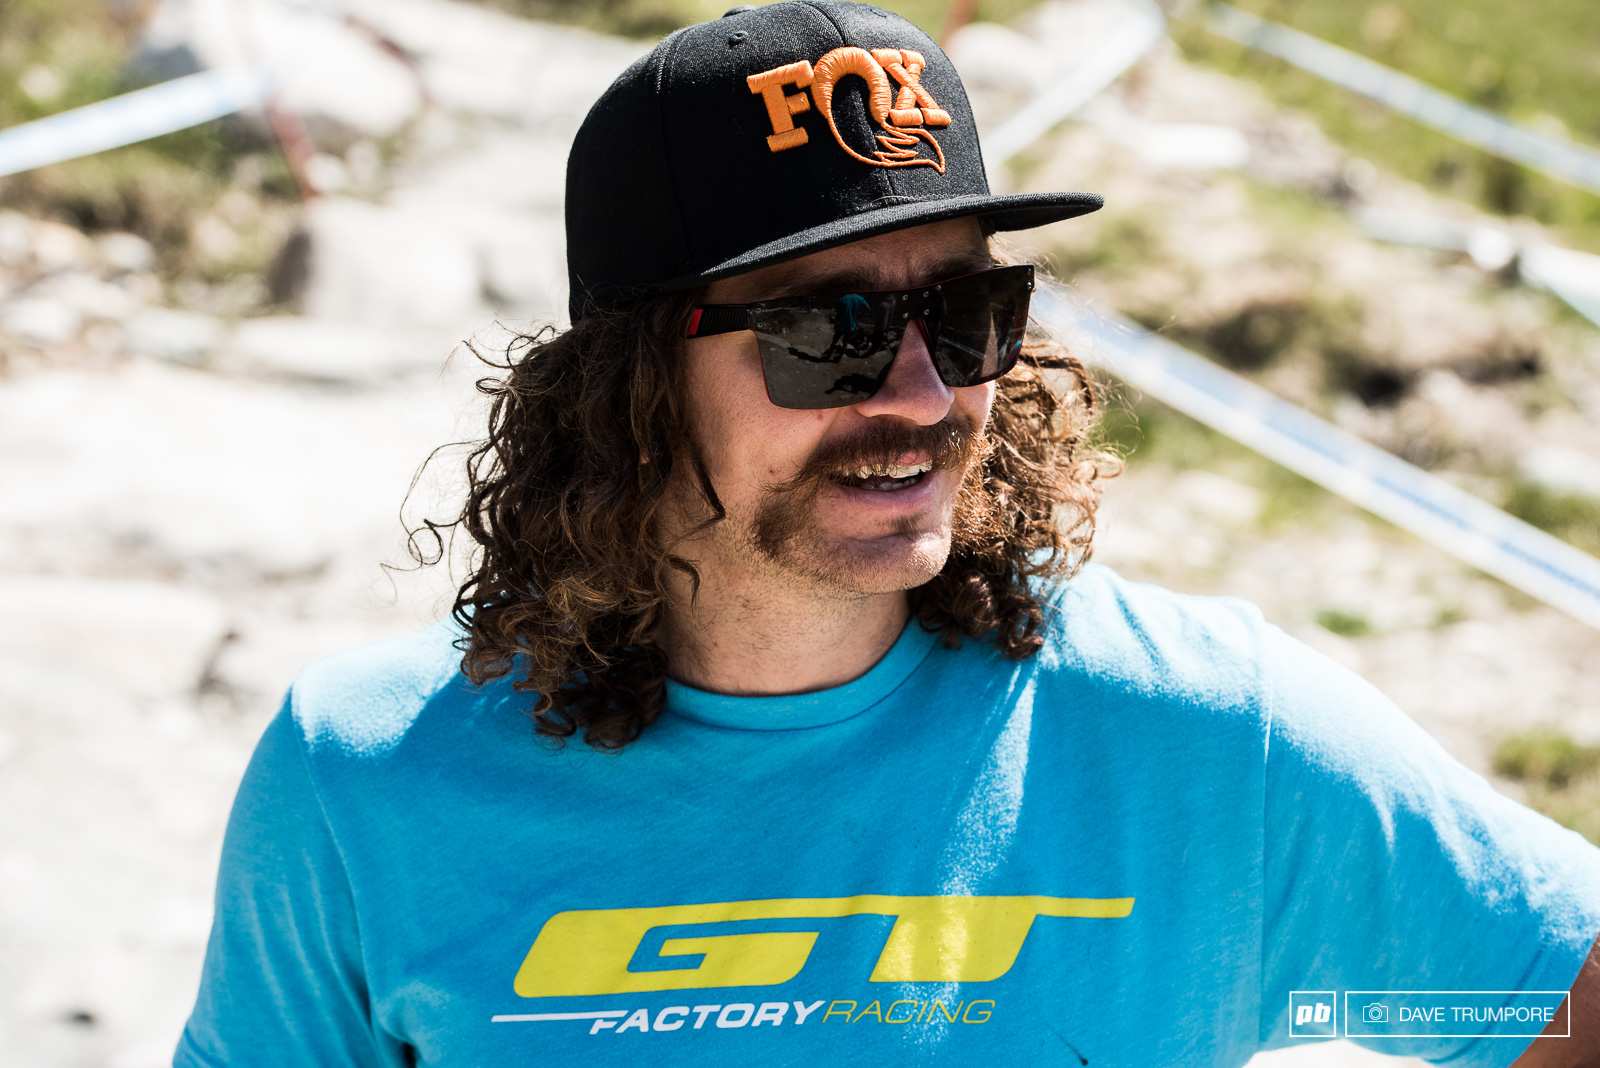 Wyn Masters is one of many riders sporting commemorative facial hair this weekend.